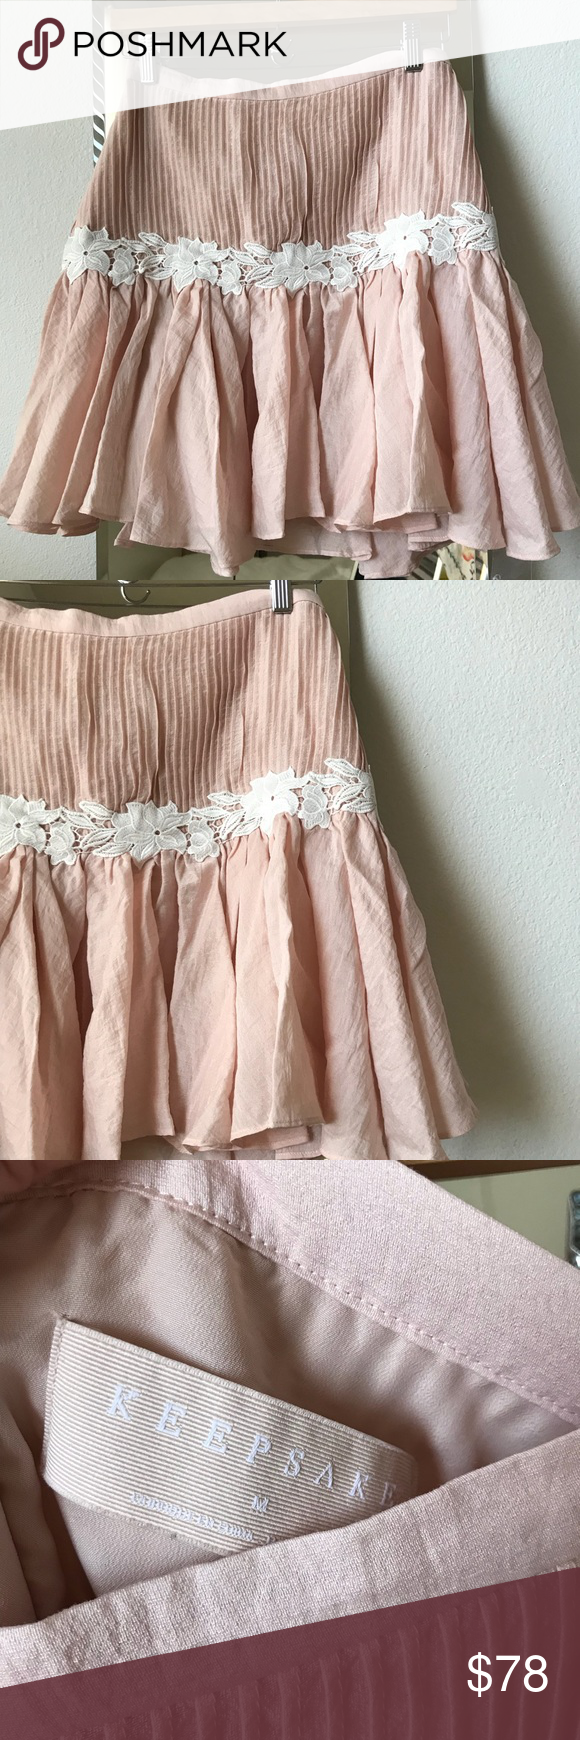 0311a115e860 KEEPSAKE THE LABEL All Mine Shell Skirt (M) Absolutely beautiful, delicate  & feminine skirt. You'll feel like a princess in this adorable skirt.